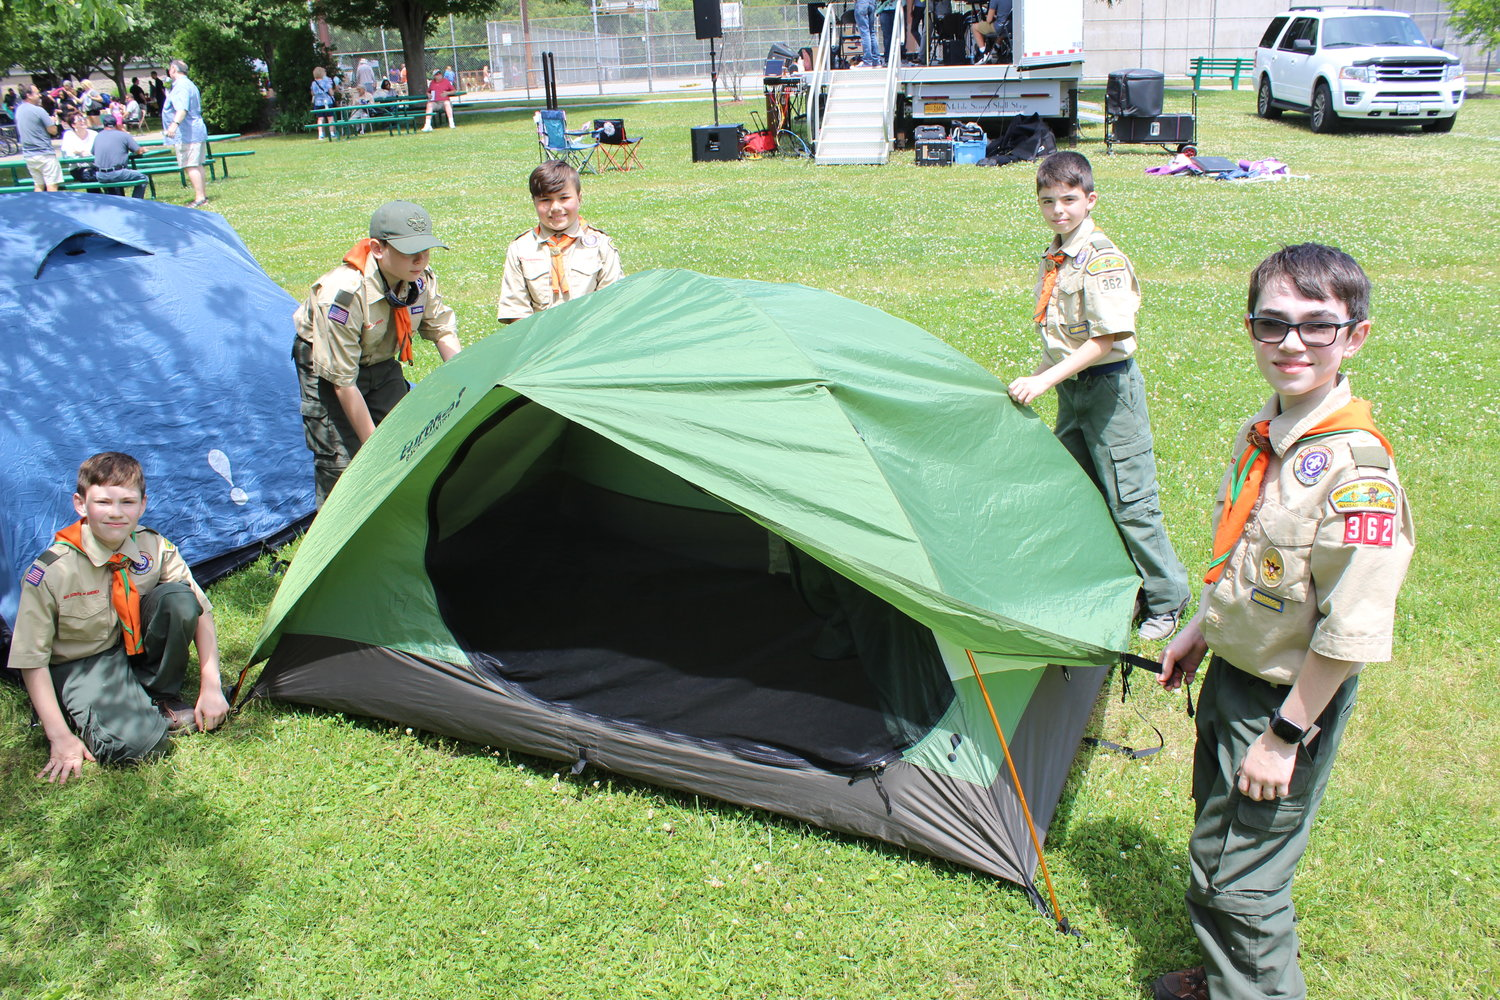 Connor Gilmor, left, Jared Waldman, Garrett Wanser, Jaiden Wevman and Logan Capozzoli, all of Boy Scout Troop 362, demonstrated pitch-tenting to guests at the 28th East Meadow Community Pride Day.